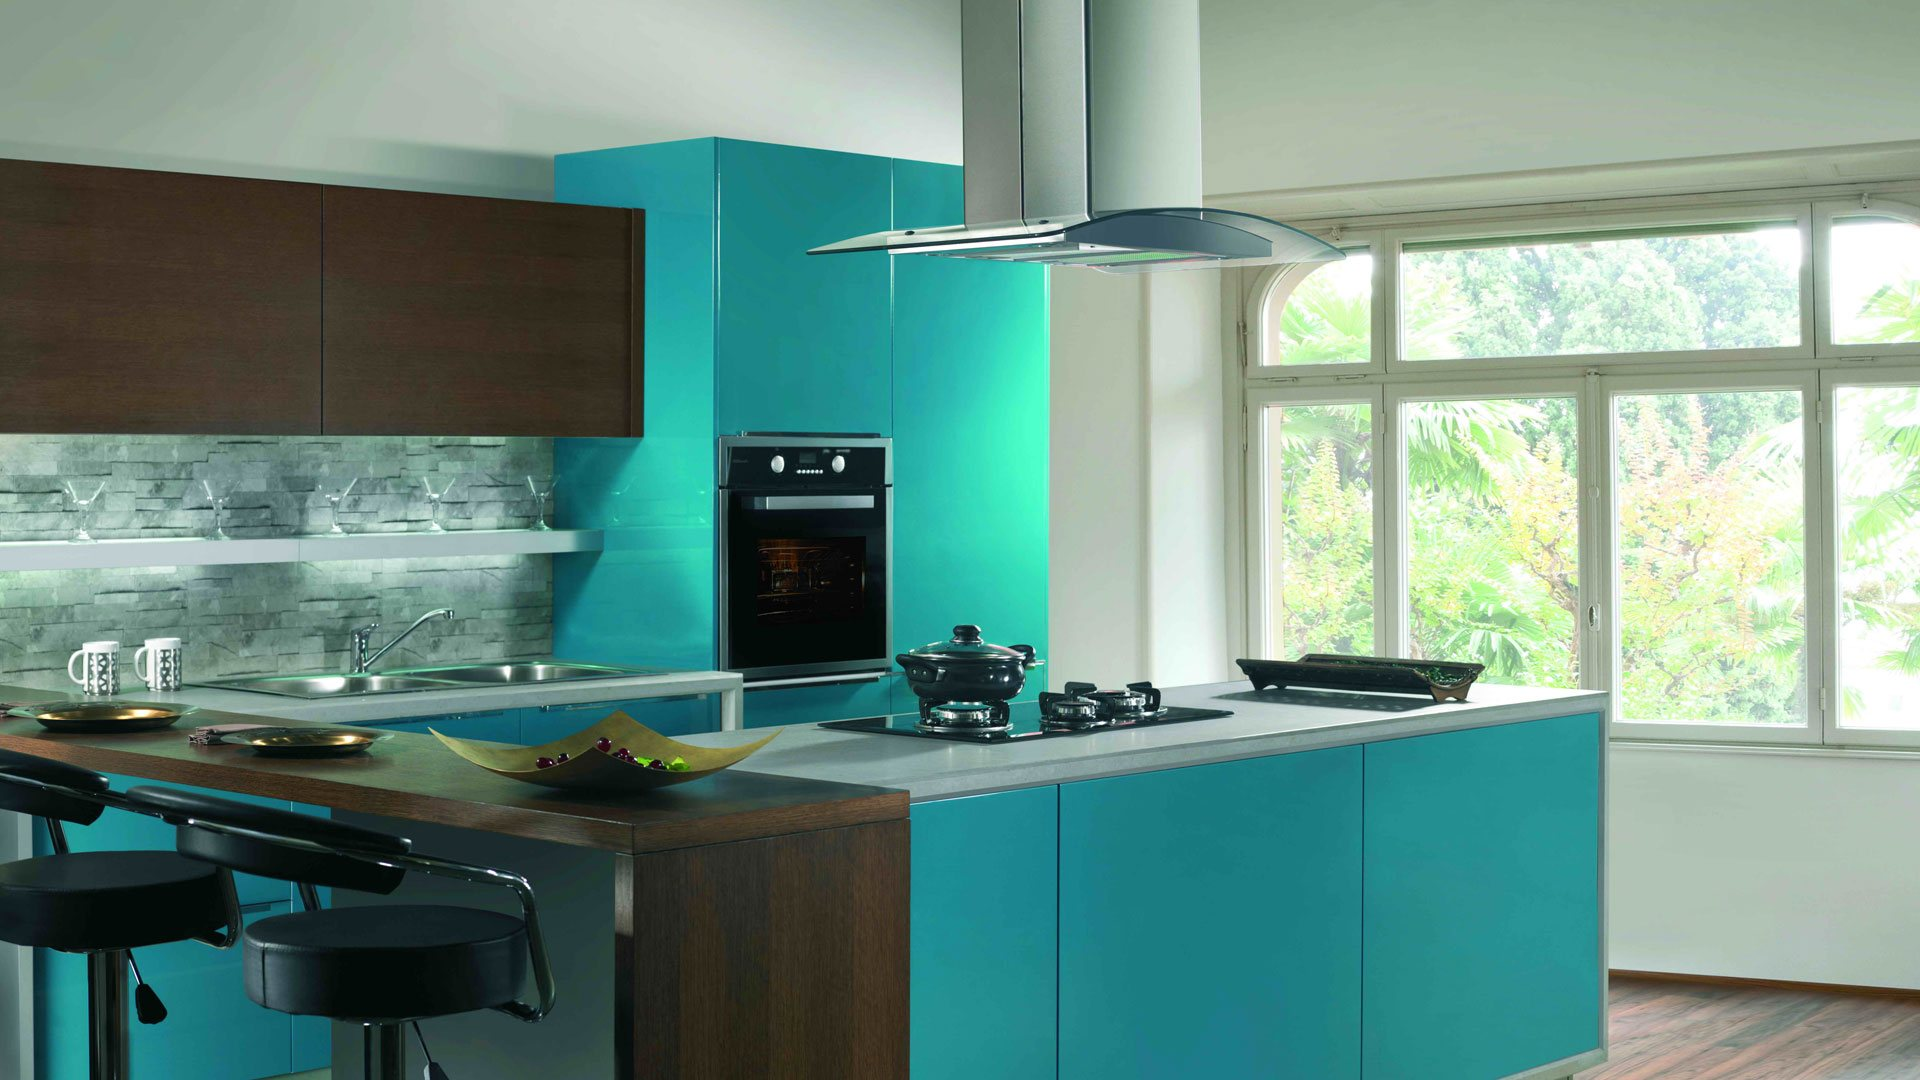 Steel Modular Kitchen Chennai Bluefox Interio 95140 19199